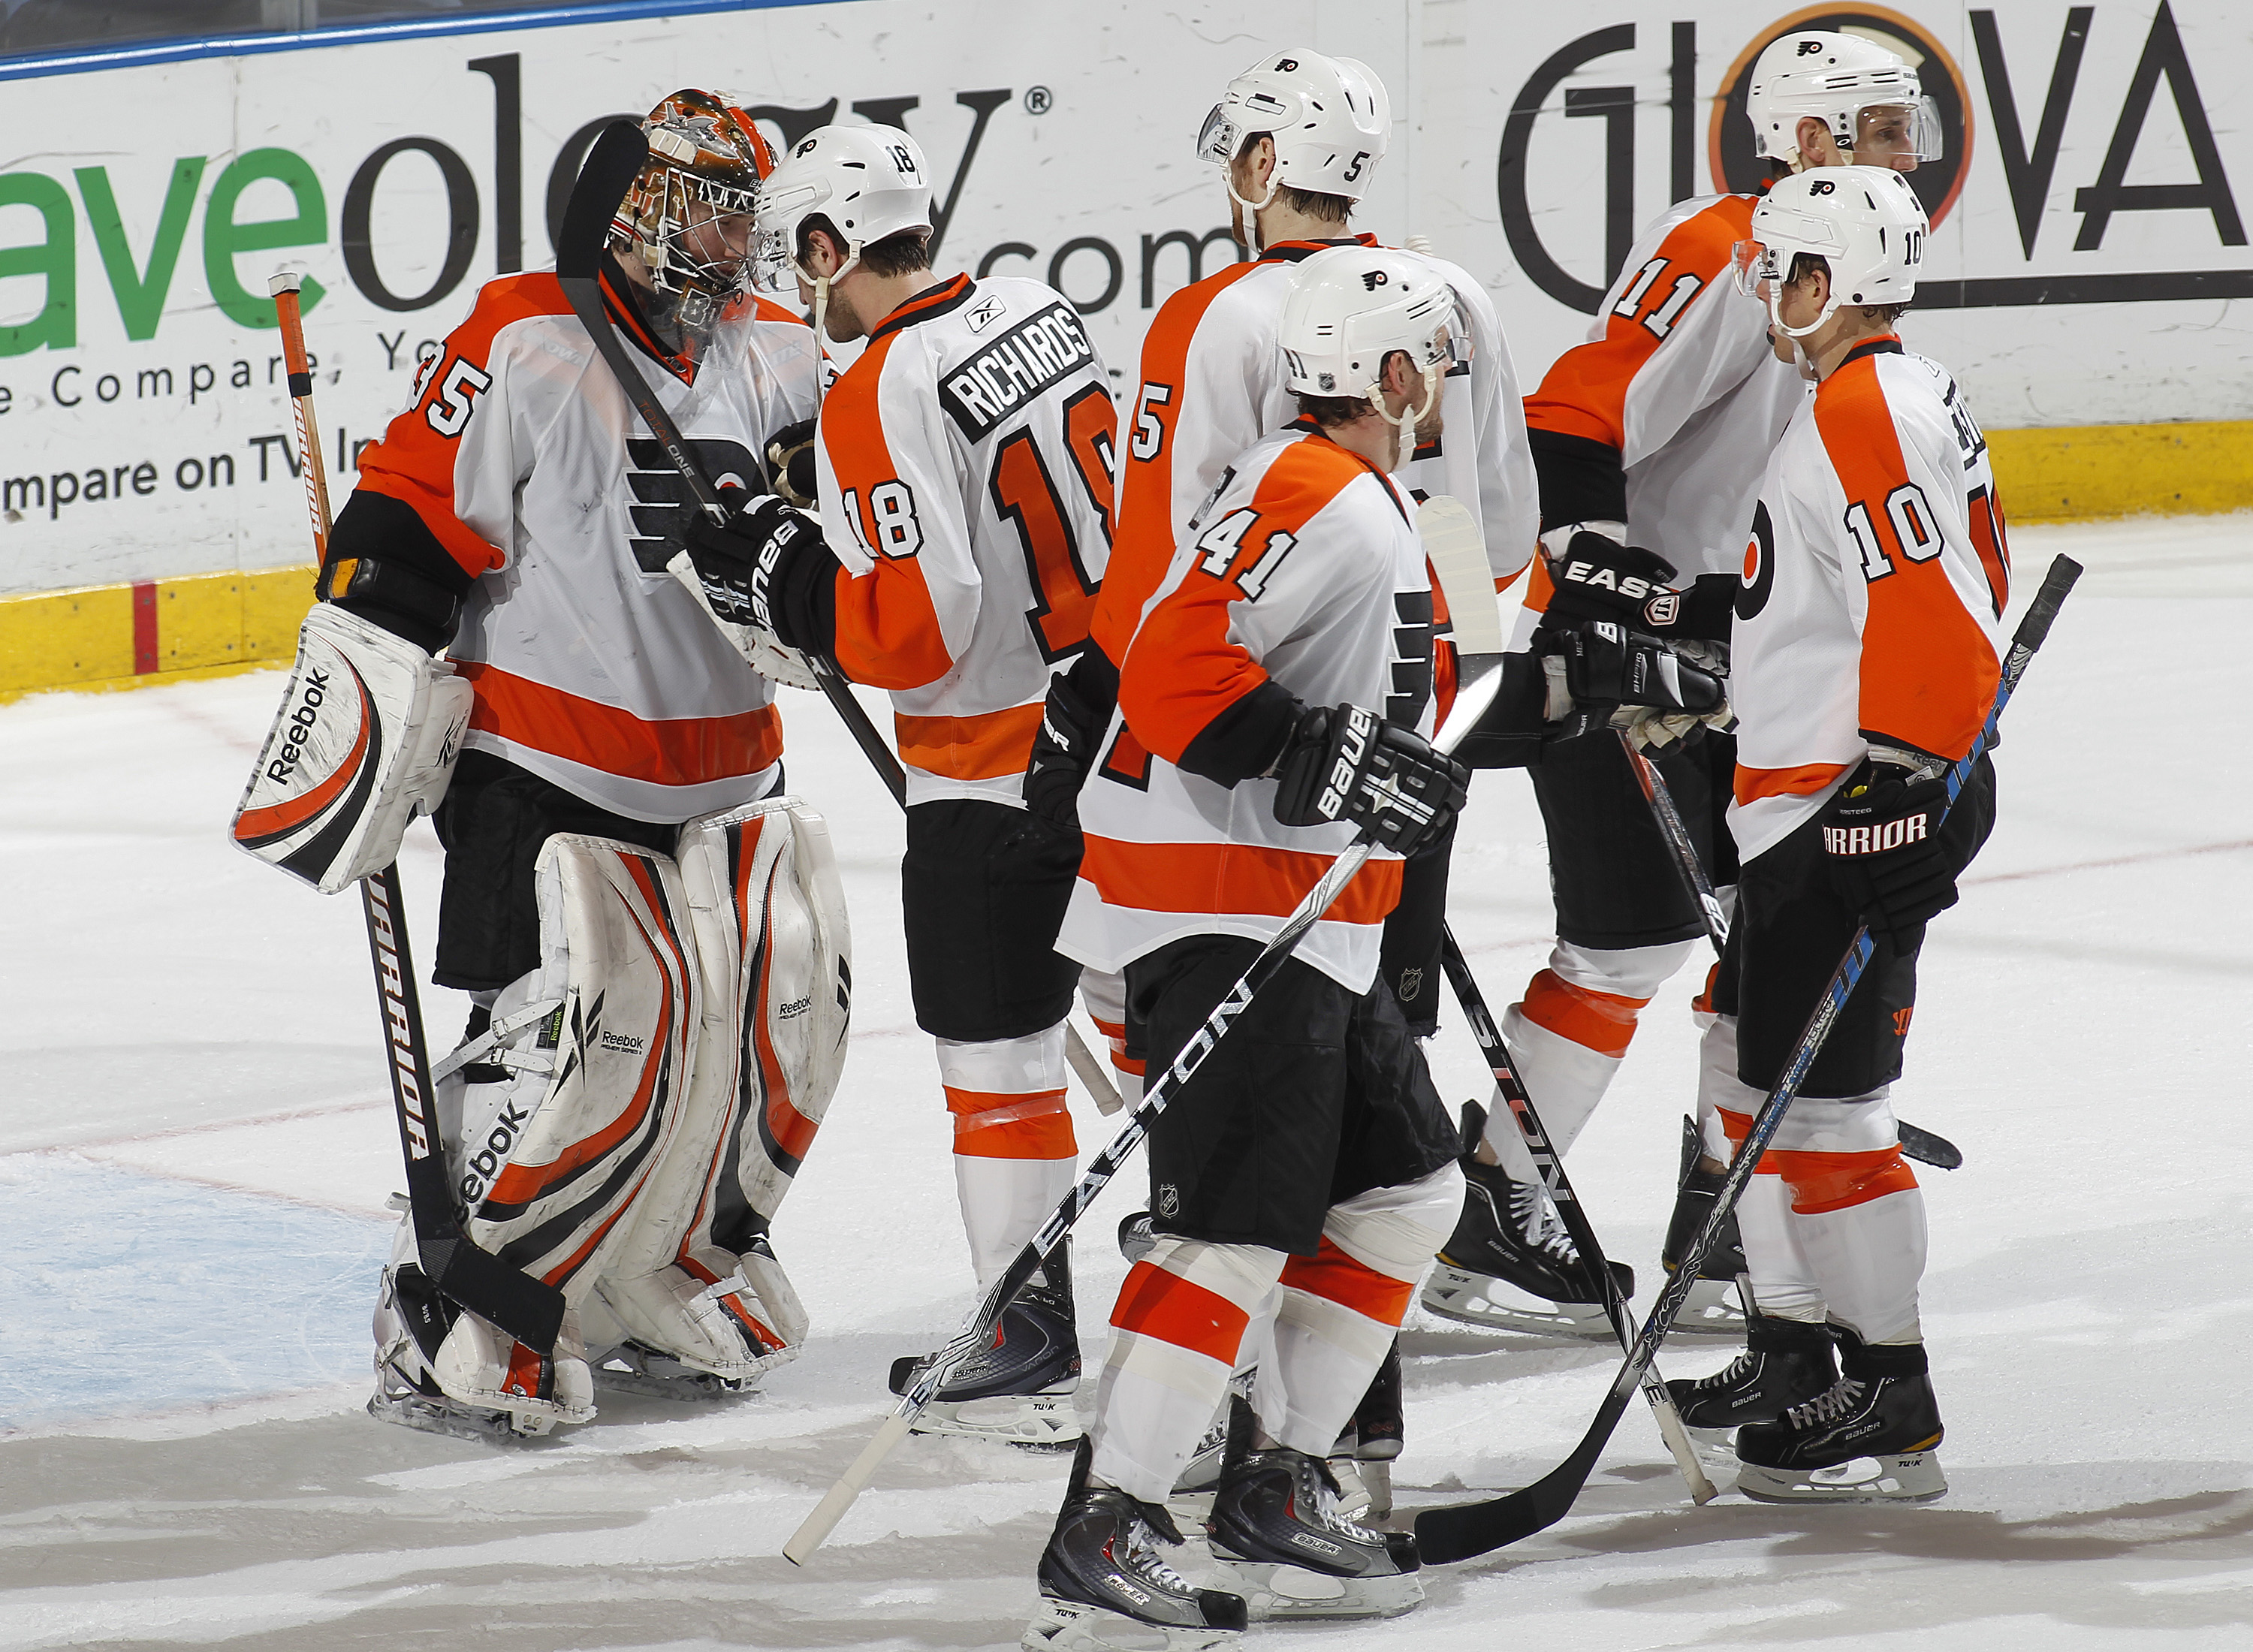 SUNRISE, FL - FEBRUARY 16: Goaltender Sergei Bobrovsky #35 of the Philadelphia Flyers is congratulated by teammates after defeating the Florida Panthers on February 16, 2011 at the BankAtlantic Center in Sunrise, Florida. The Flyers defeated the Panthers